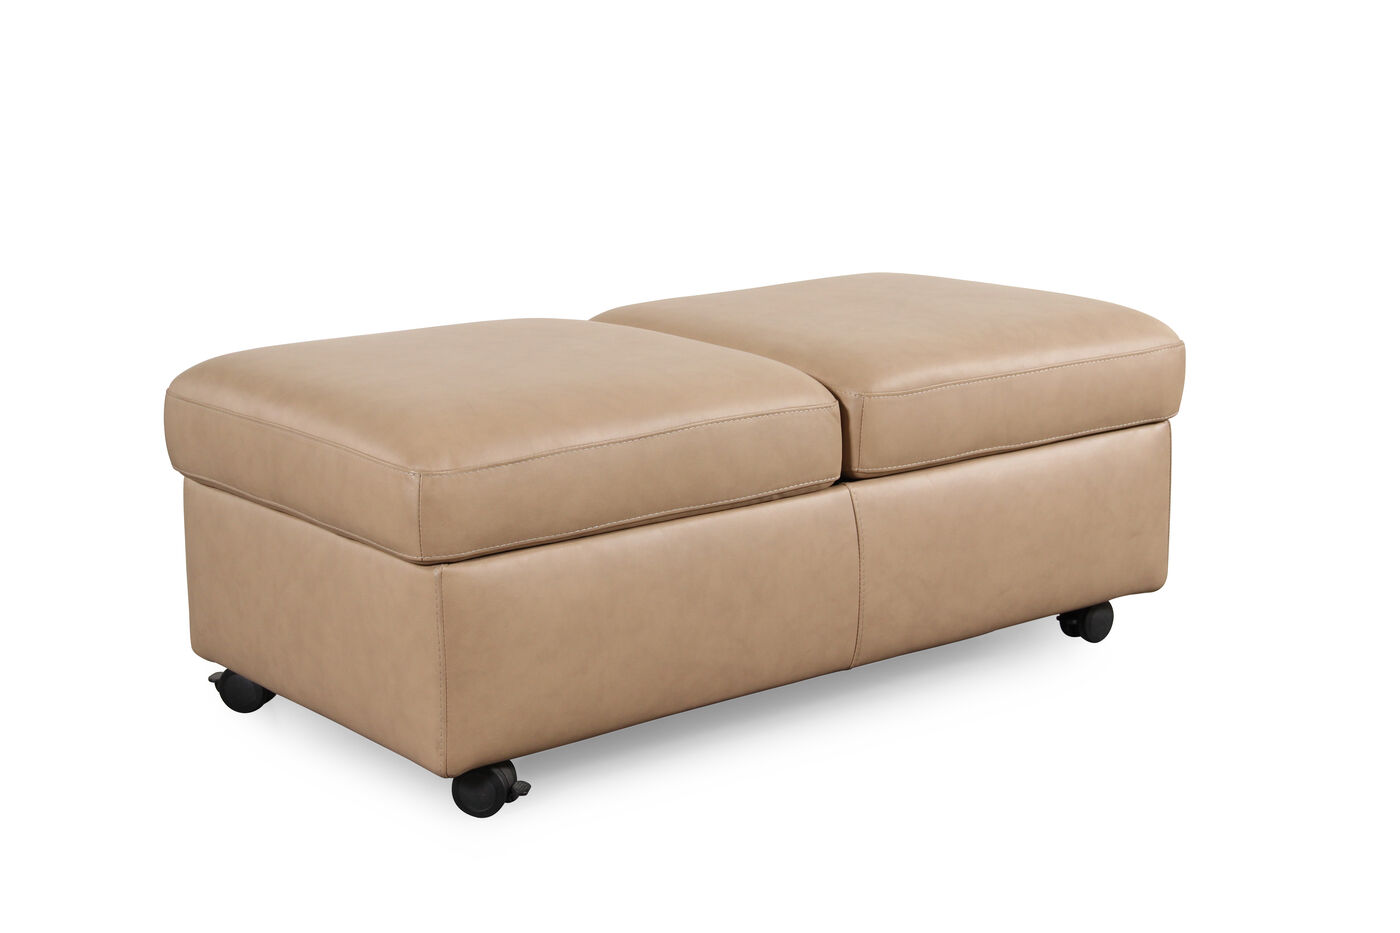 stressless paloma sand double ottoman with table top. Black Bedroom Furniture Sets. Home Design Ideas